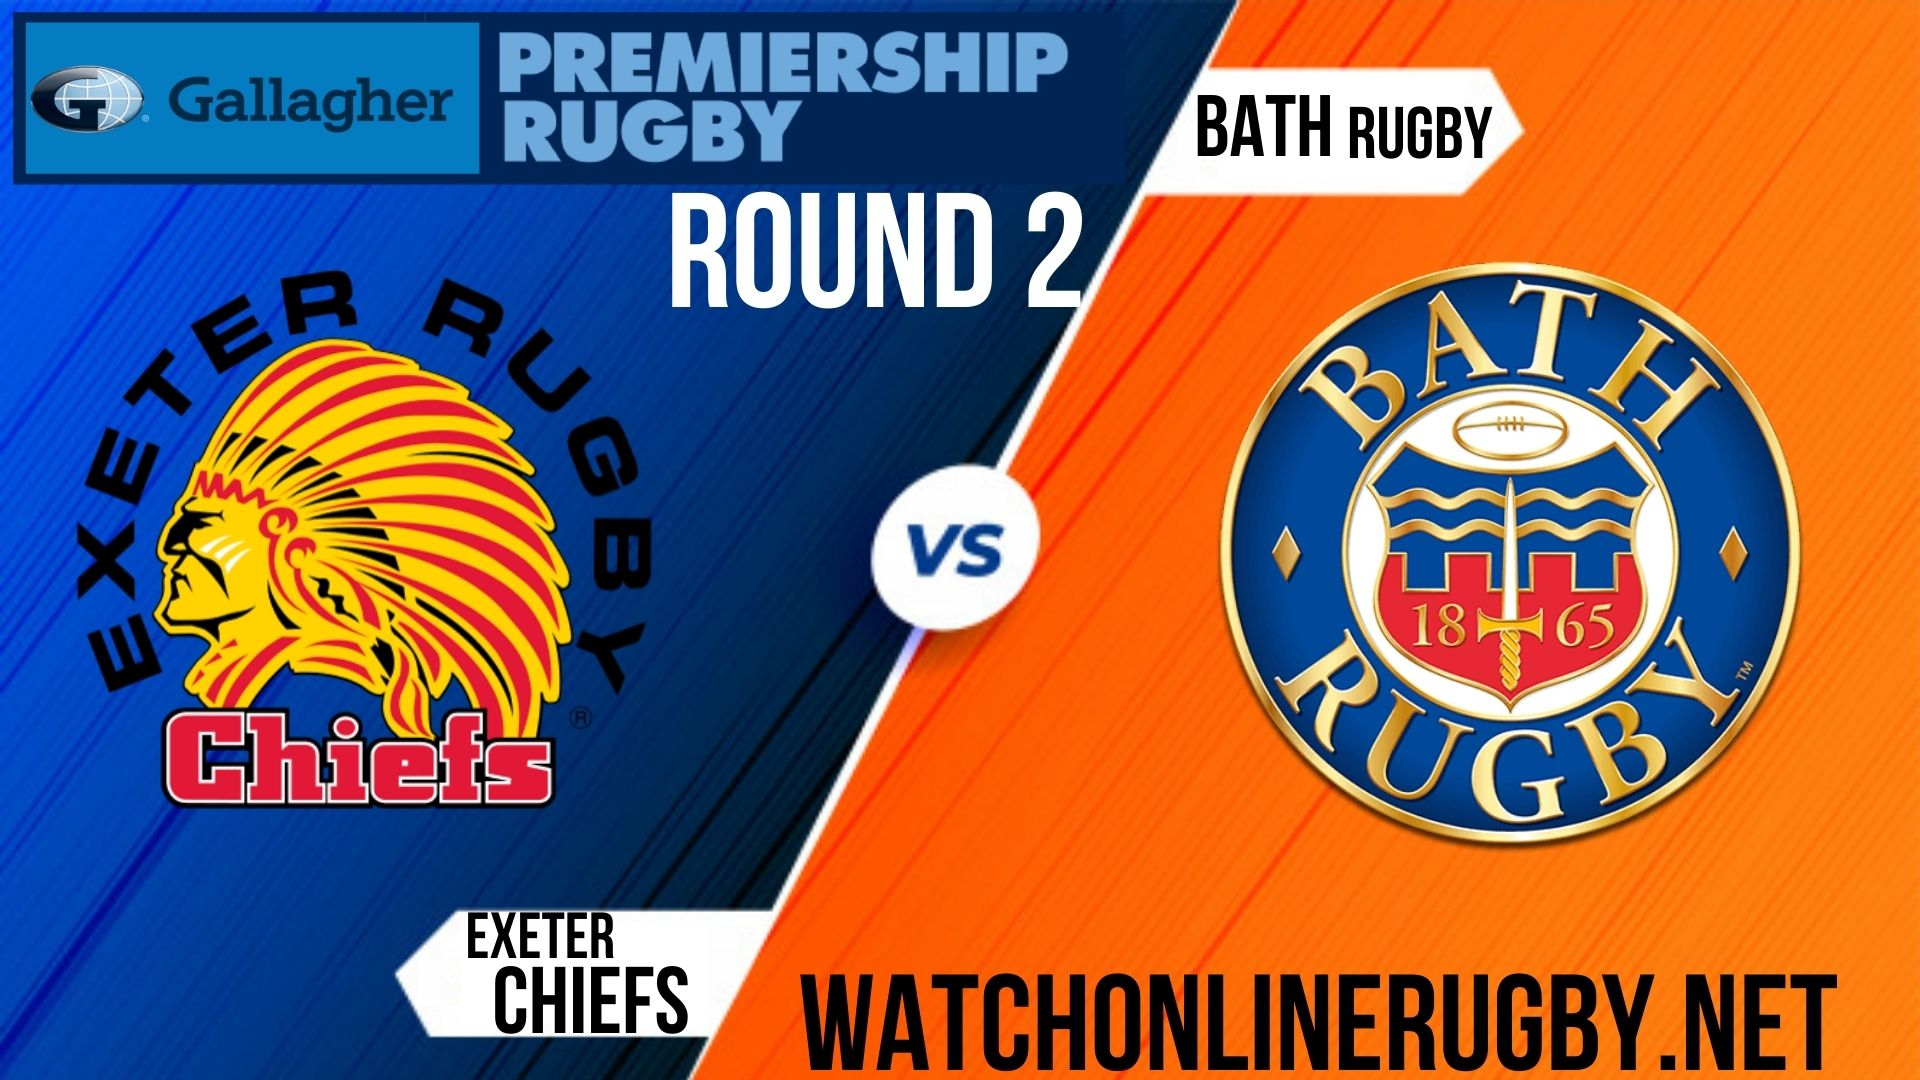 exeter-chiefs-vs-bath-rugby-live